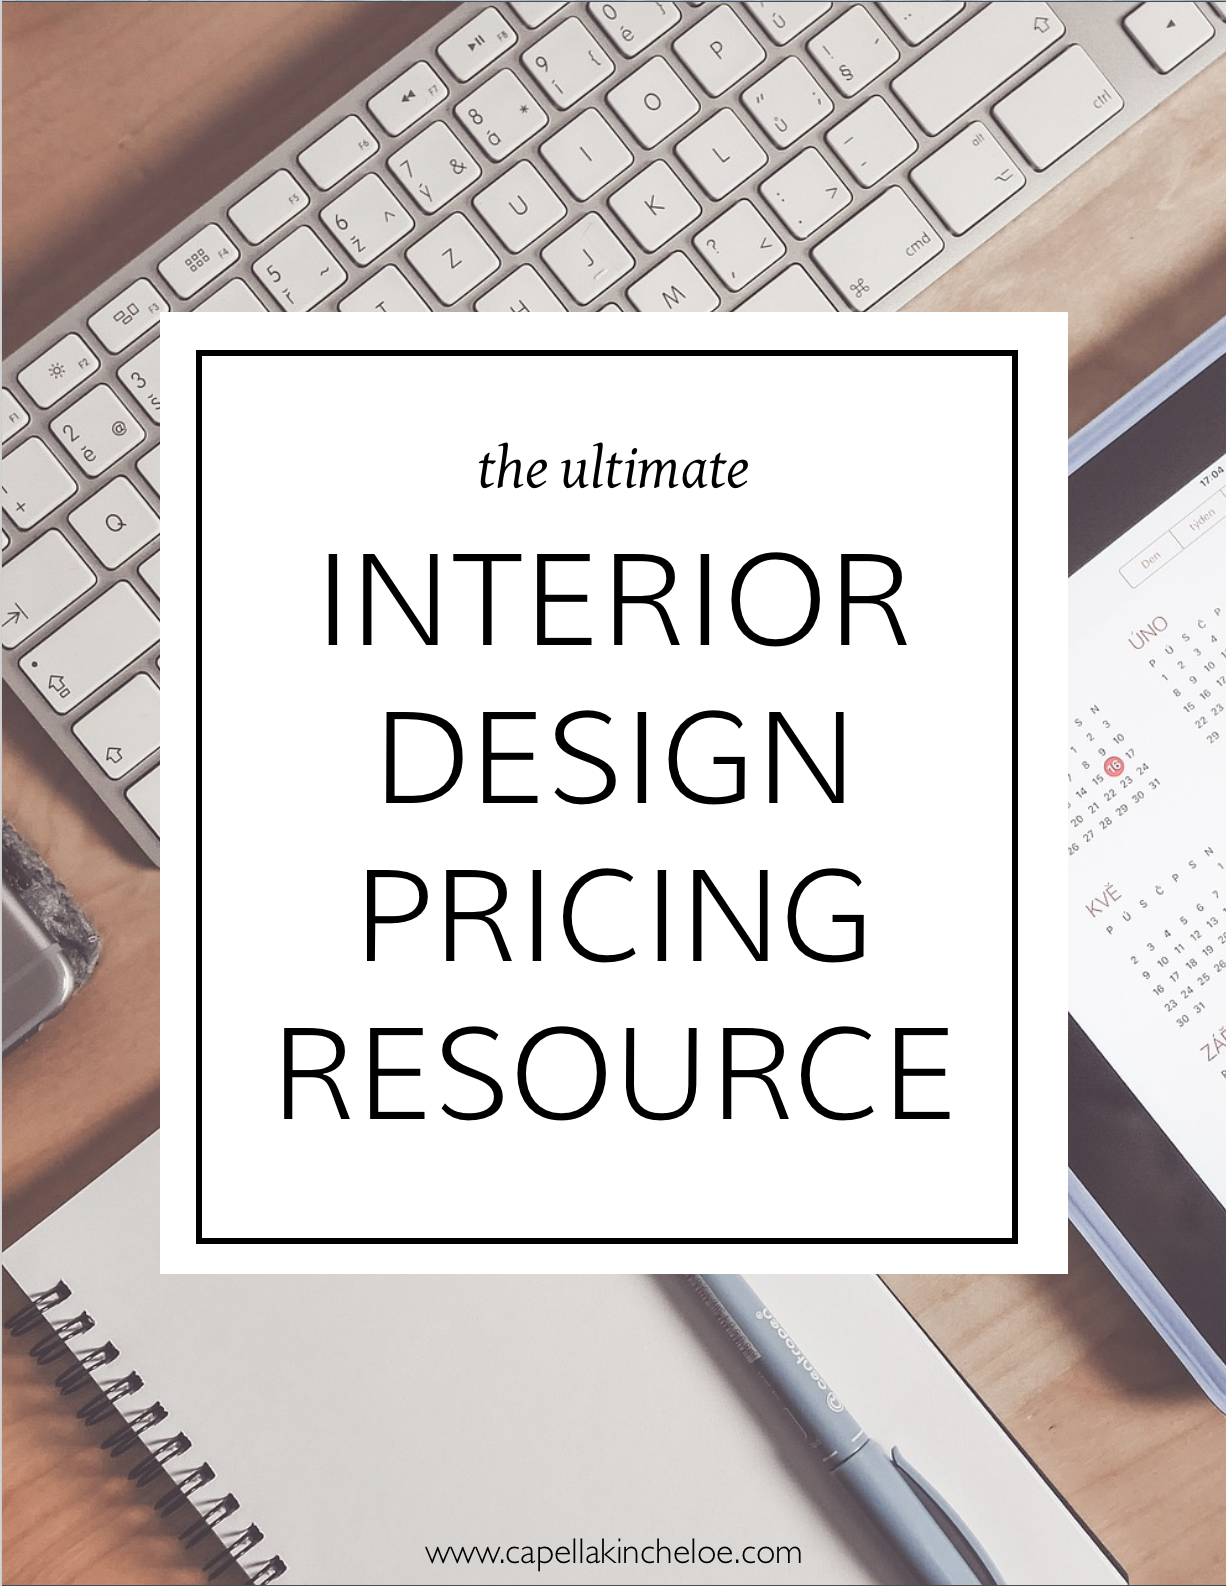 the ultimate interior design pricing resource.png